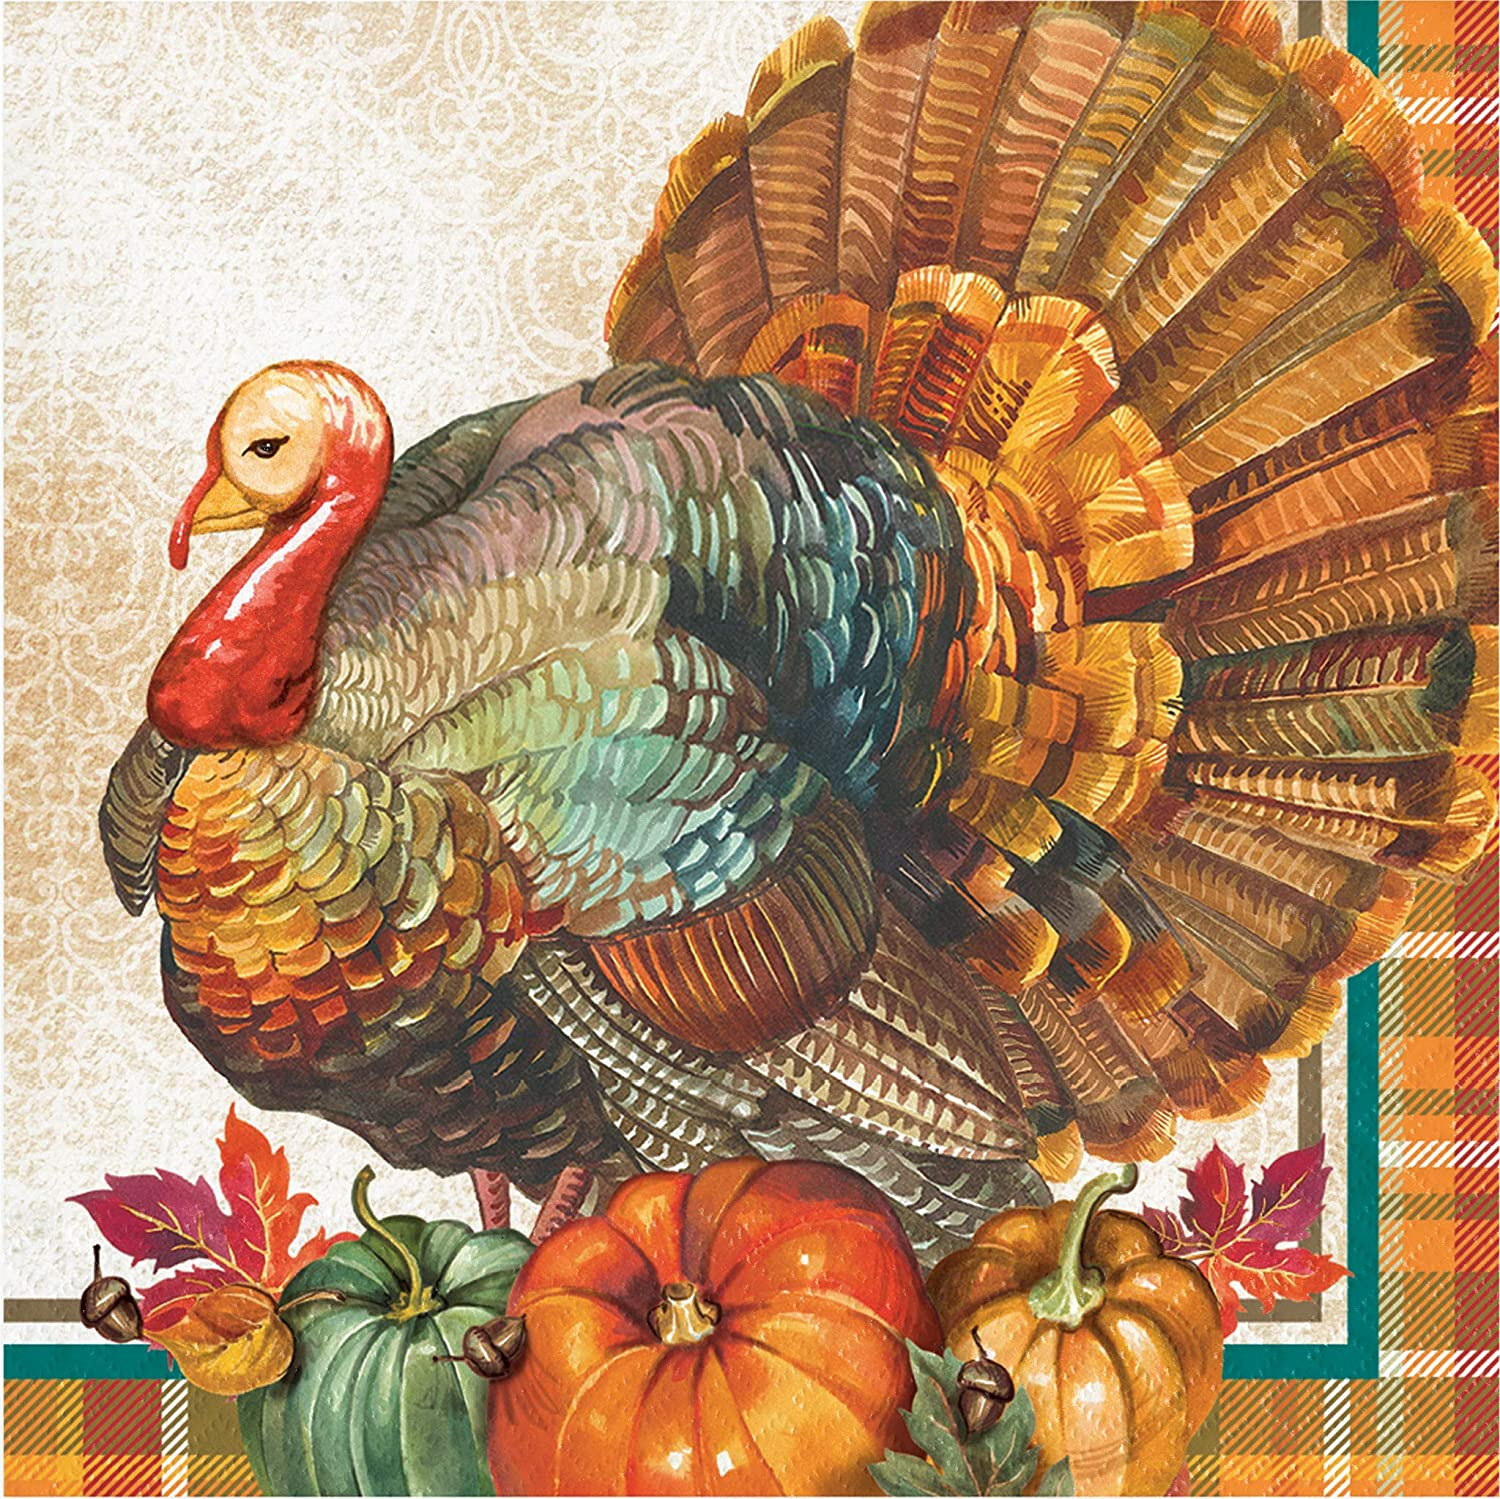 Dessert Plates and Buffet Guest Hand Towel Napkins in a Traditional Design for 8 Guests Thanksgiving Turkey Party Tableware Supply Pack: Bundle Includes Dinner Plates Luncheon Napkins